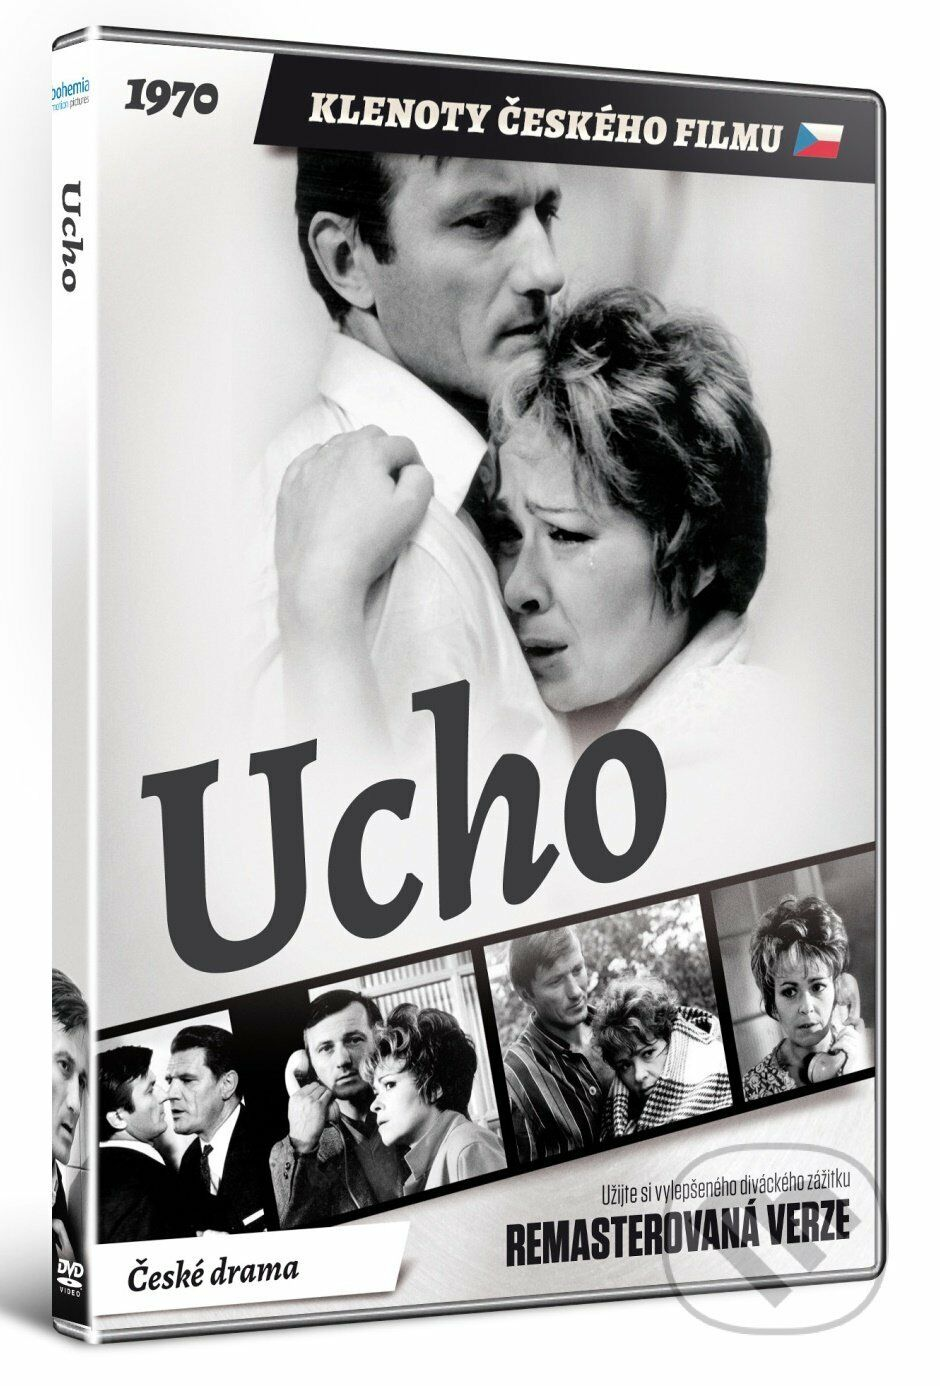 THE EAR (Ucho) DVD - Czech Film Poster Gallery